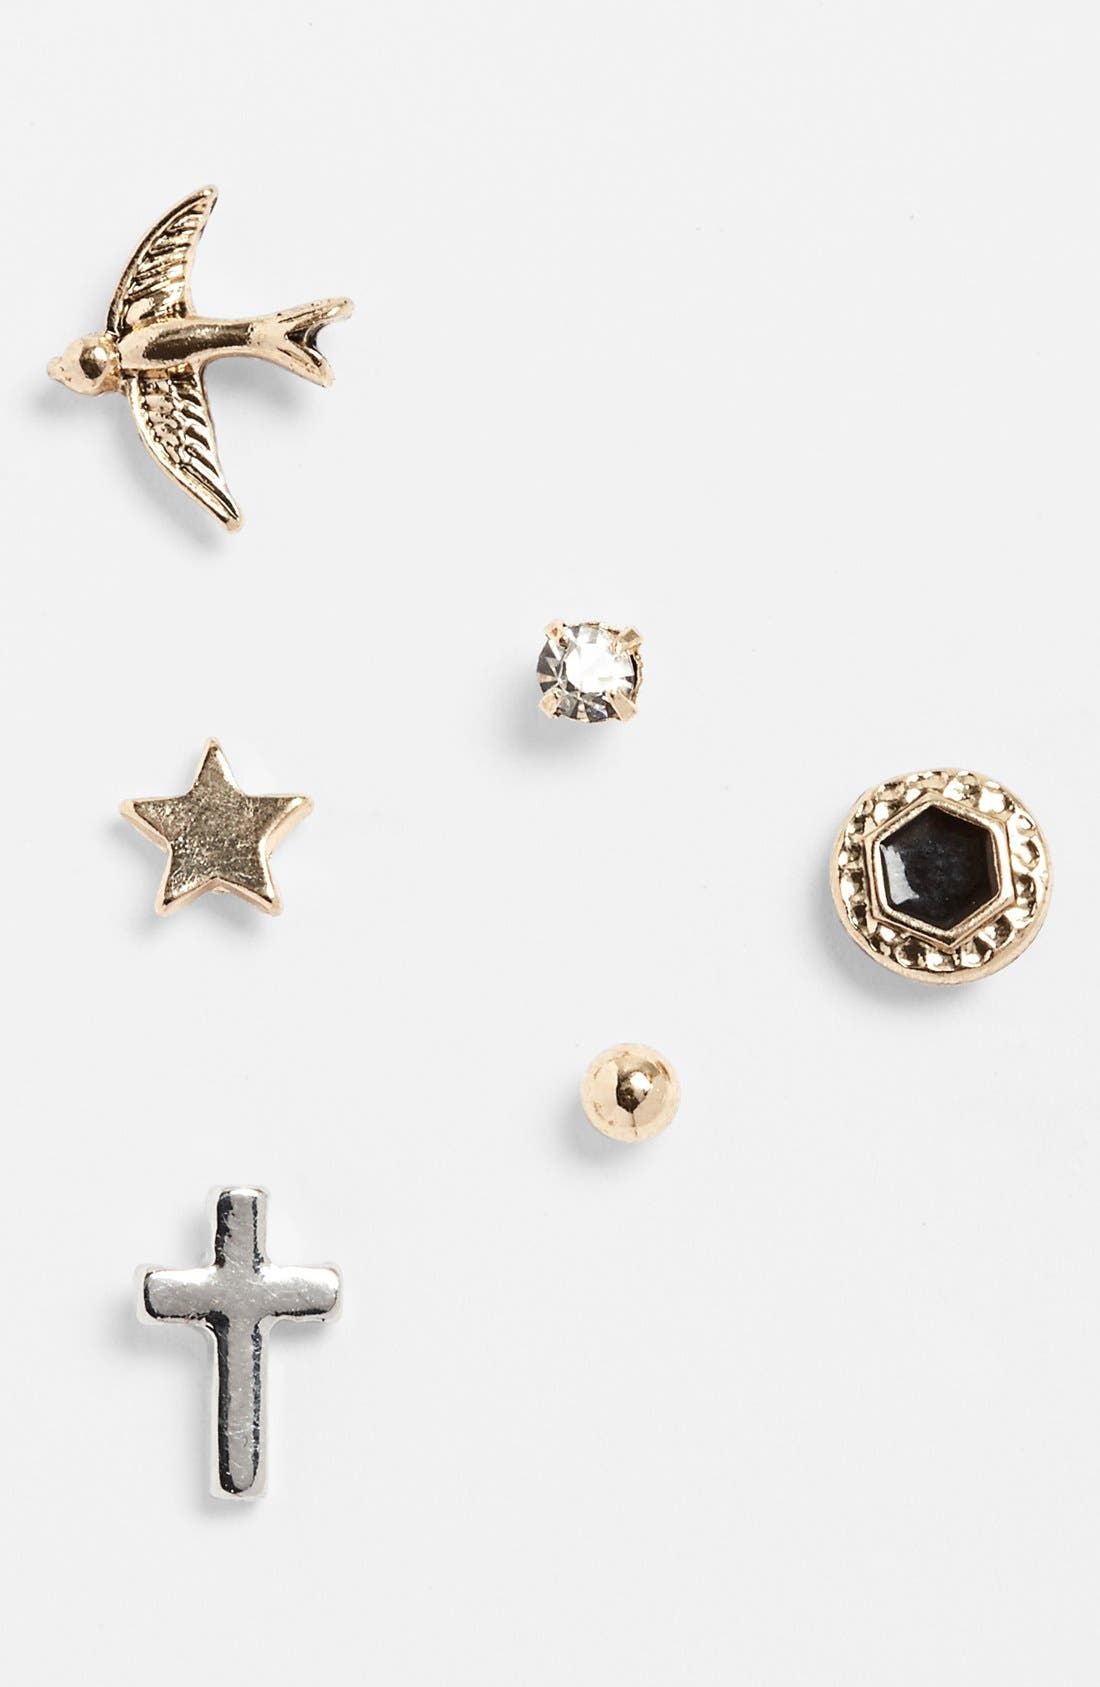 Alternate Image 1 Selected - Statements by DCK Assorted Stud Earrings (Set of 6)